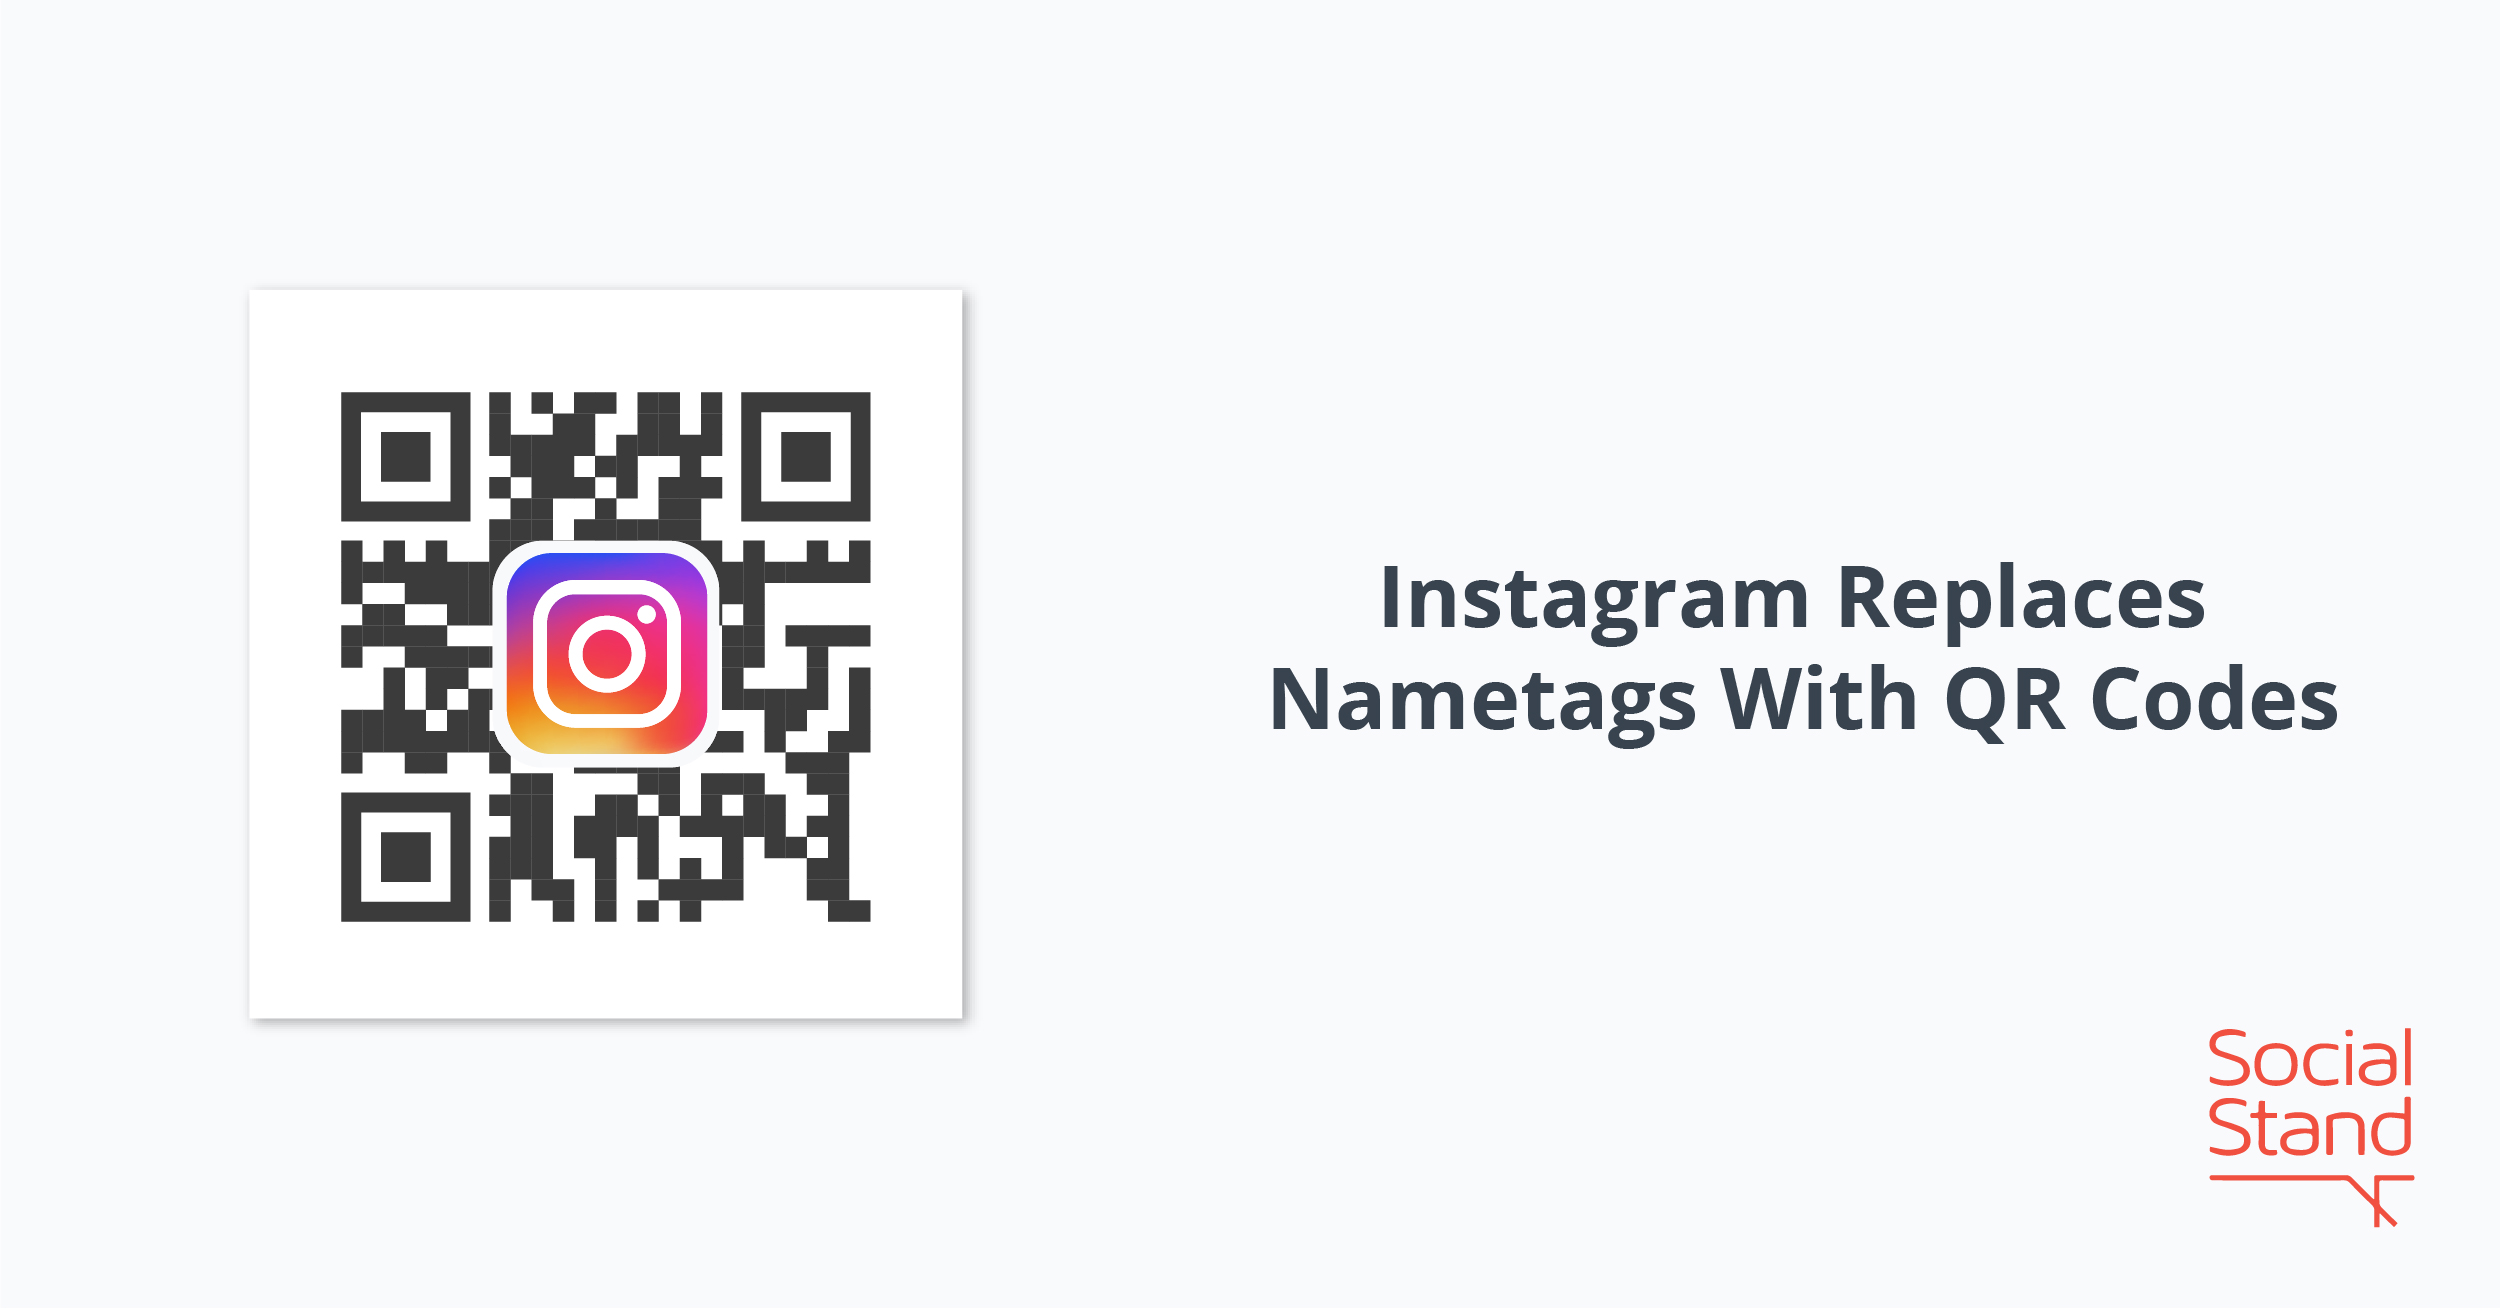 How To Follow And Scan An Instagram Nametag Code With Your